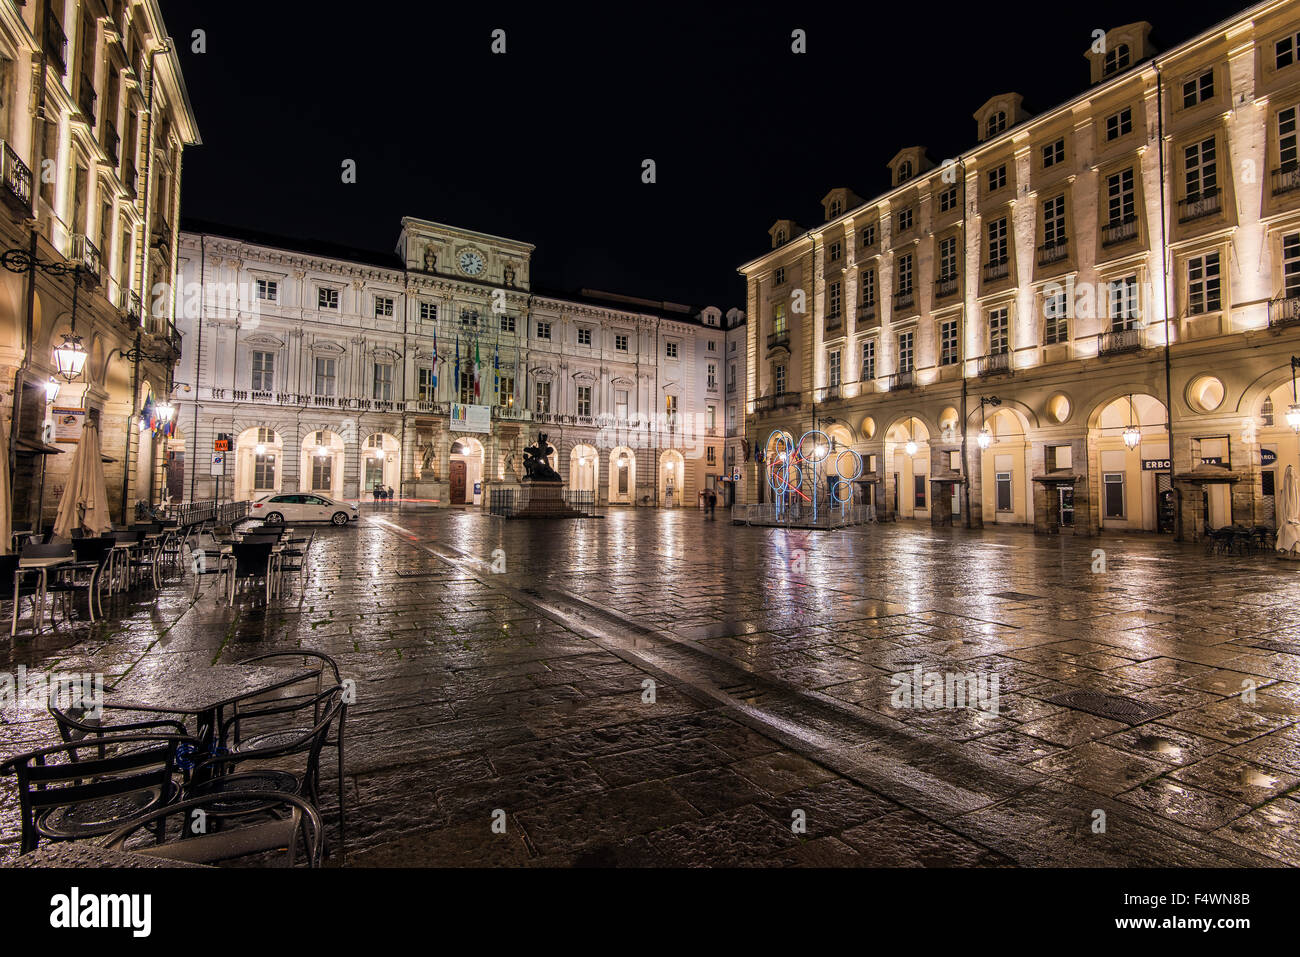 Night view of Piazza Palazzo di Città or Piazza delle Erbe with town hall, Turin, Piedmont, Italy - Stock Image